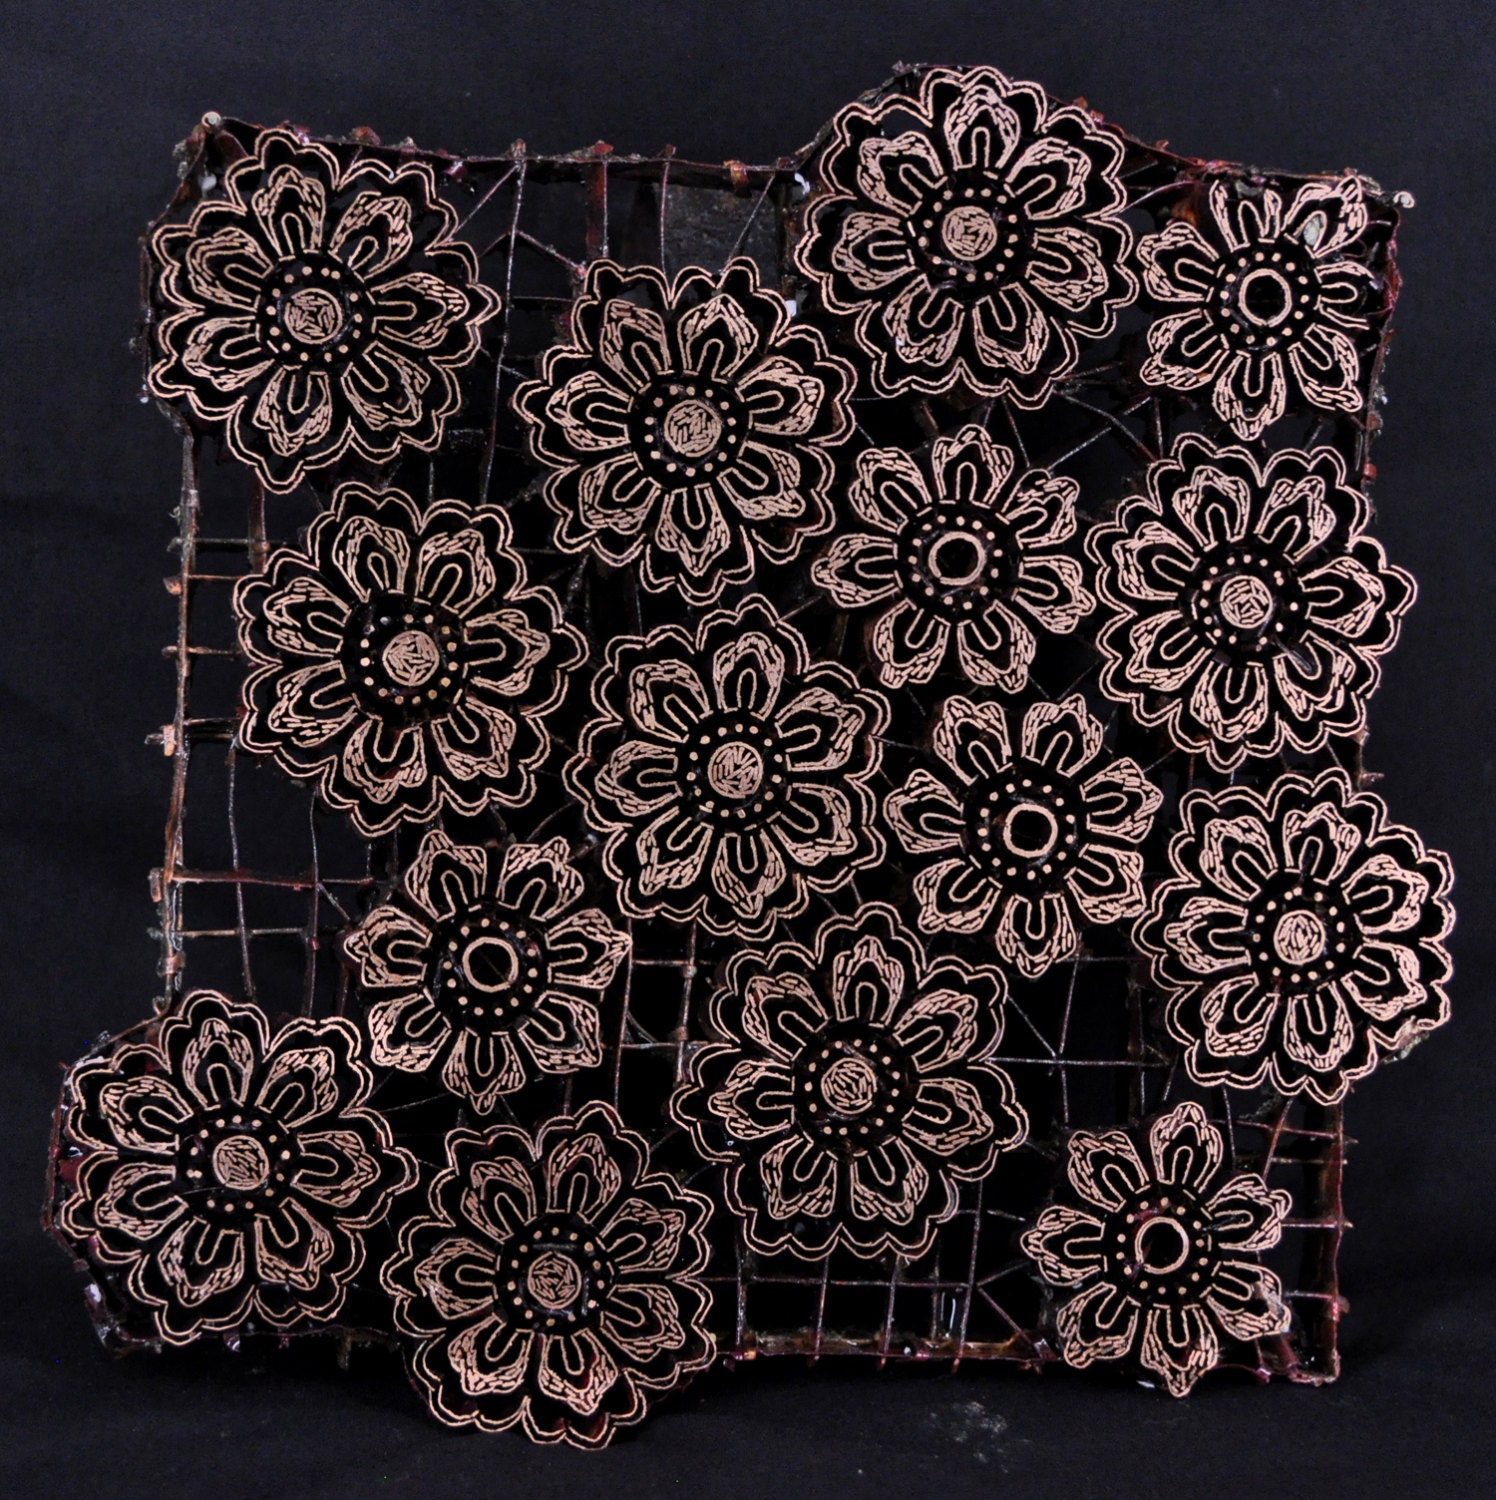 artisan batik cap chakra flowers from lunnfabrics on etsy studio. Black Bedroom Furniture Sets. Home Design Ideas